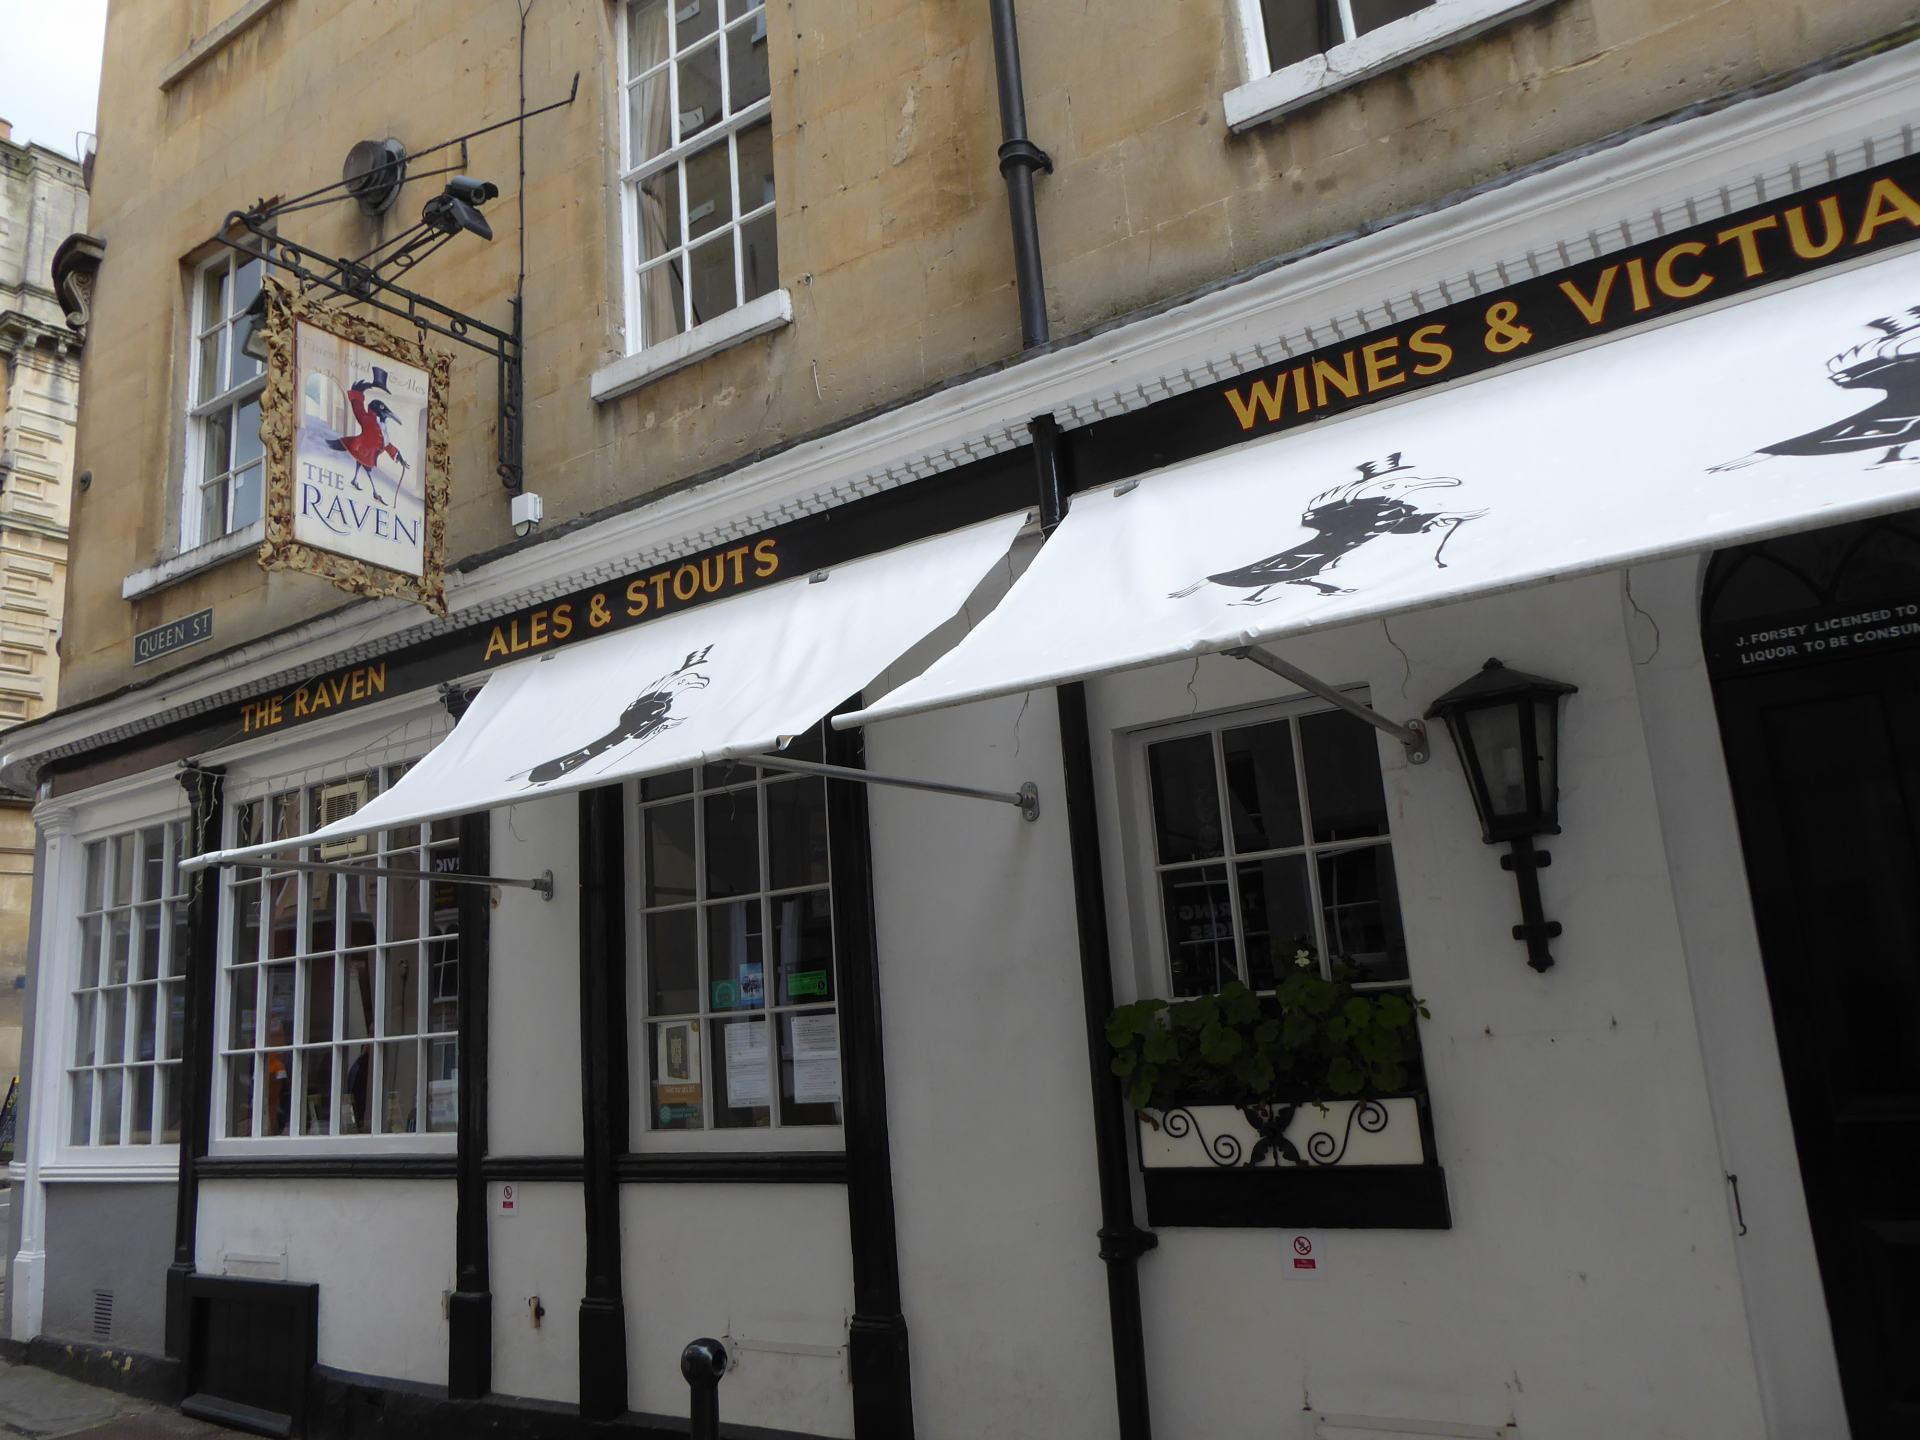 View of the outside of the Raven. Including it's pub sign saying 'The Raven' and text on the building including 'ALES & STOUTS'